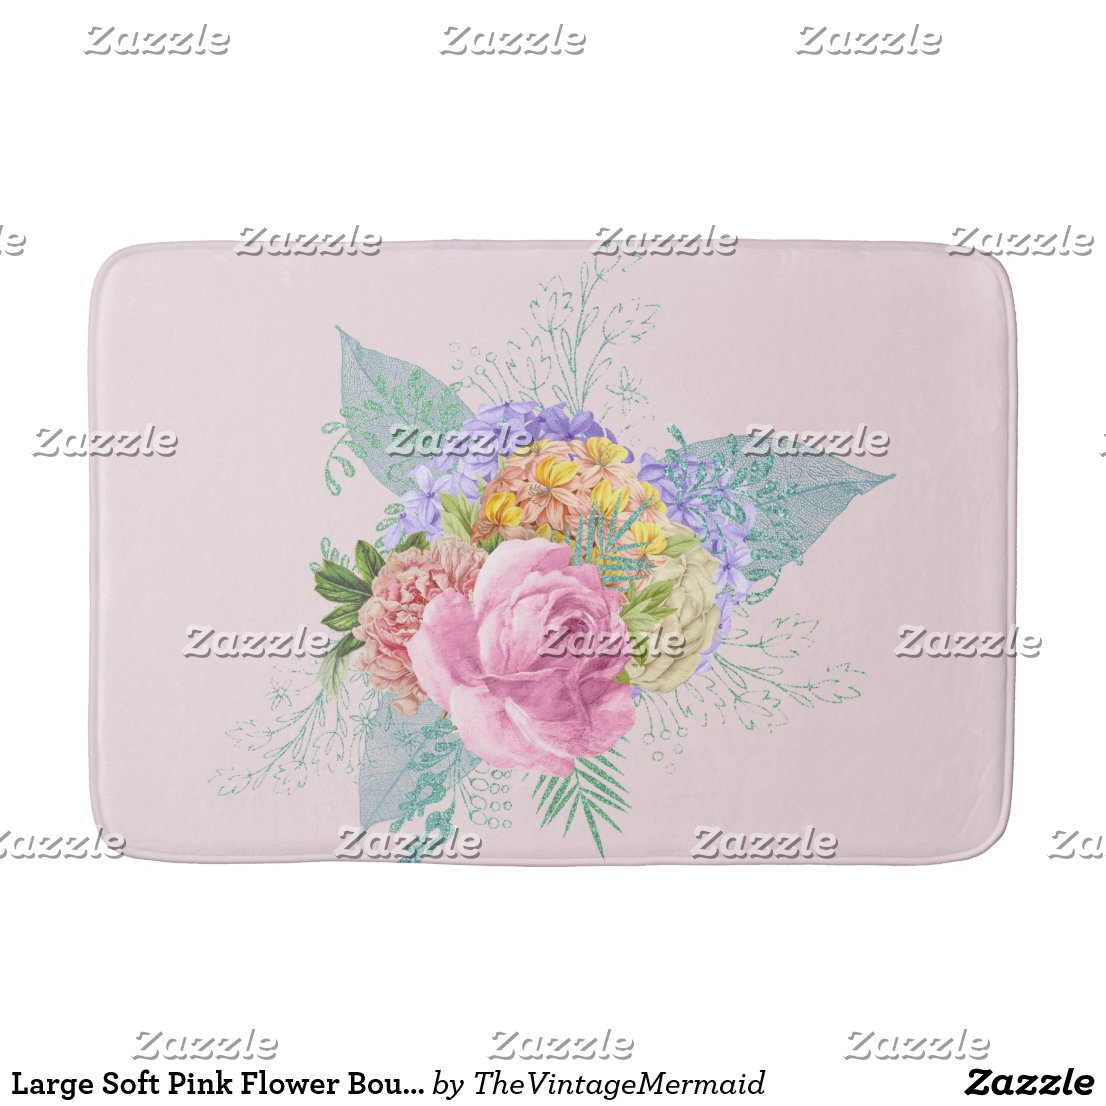 Large Soft Pink Flower Bouquet Bath Mat